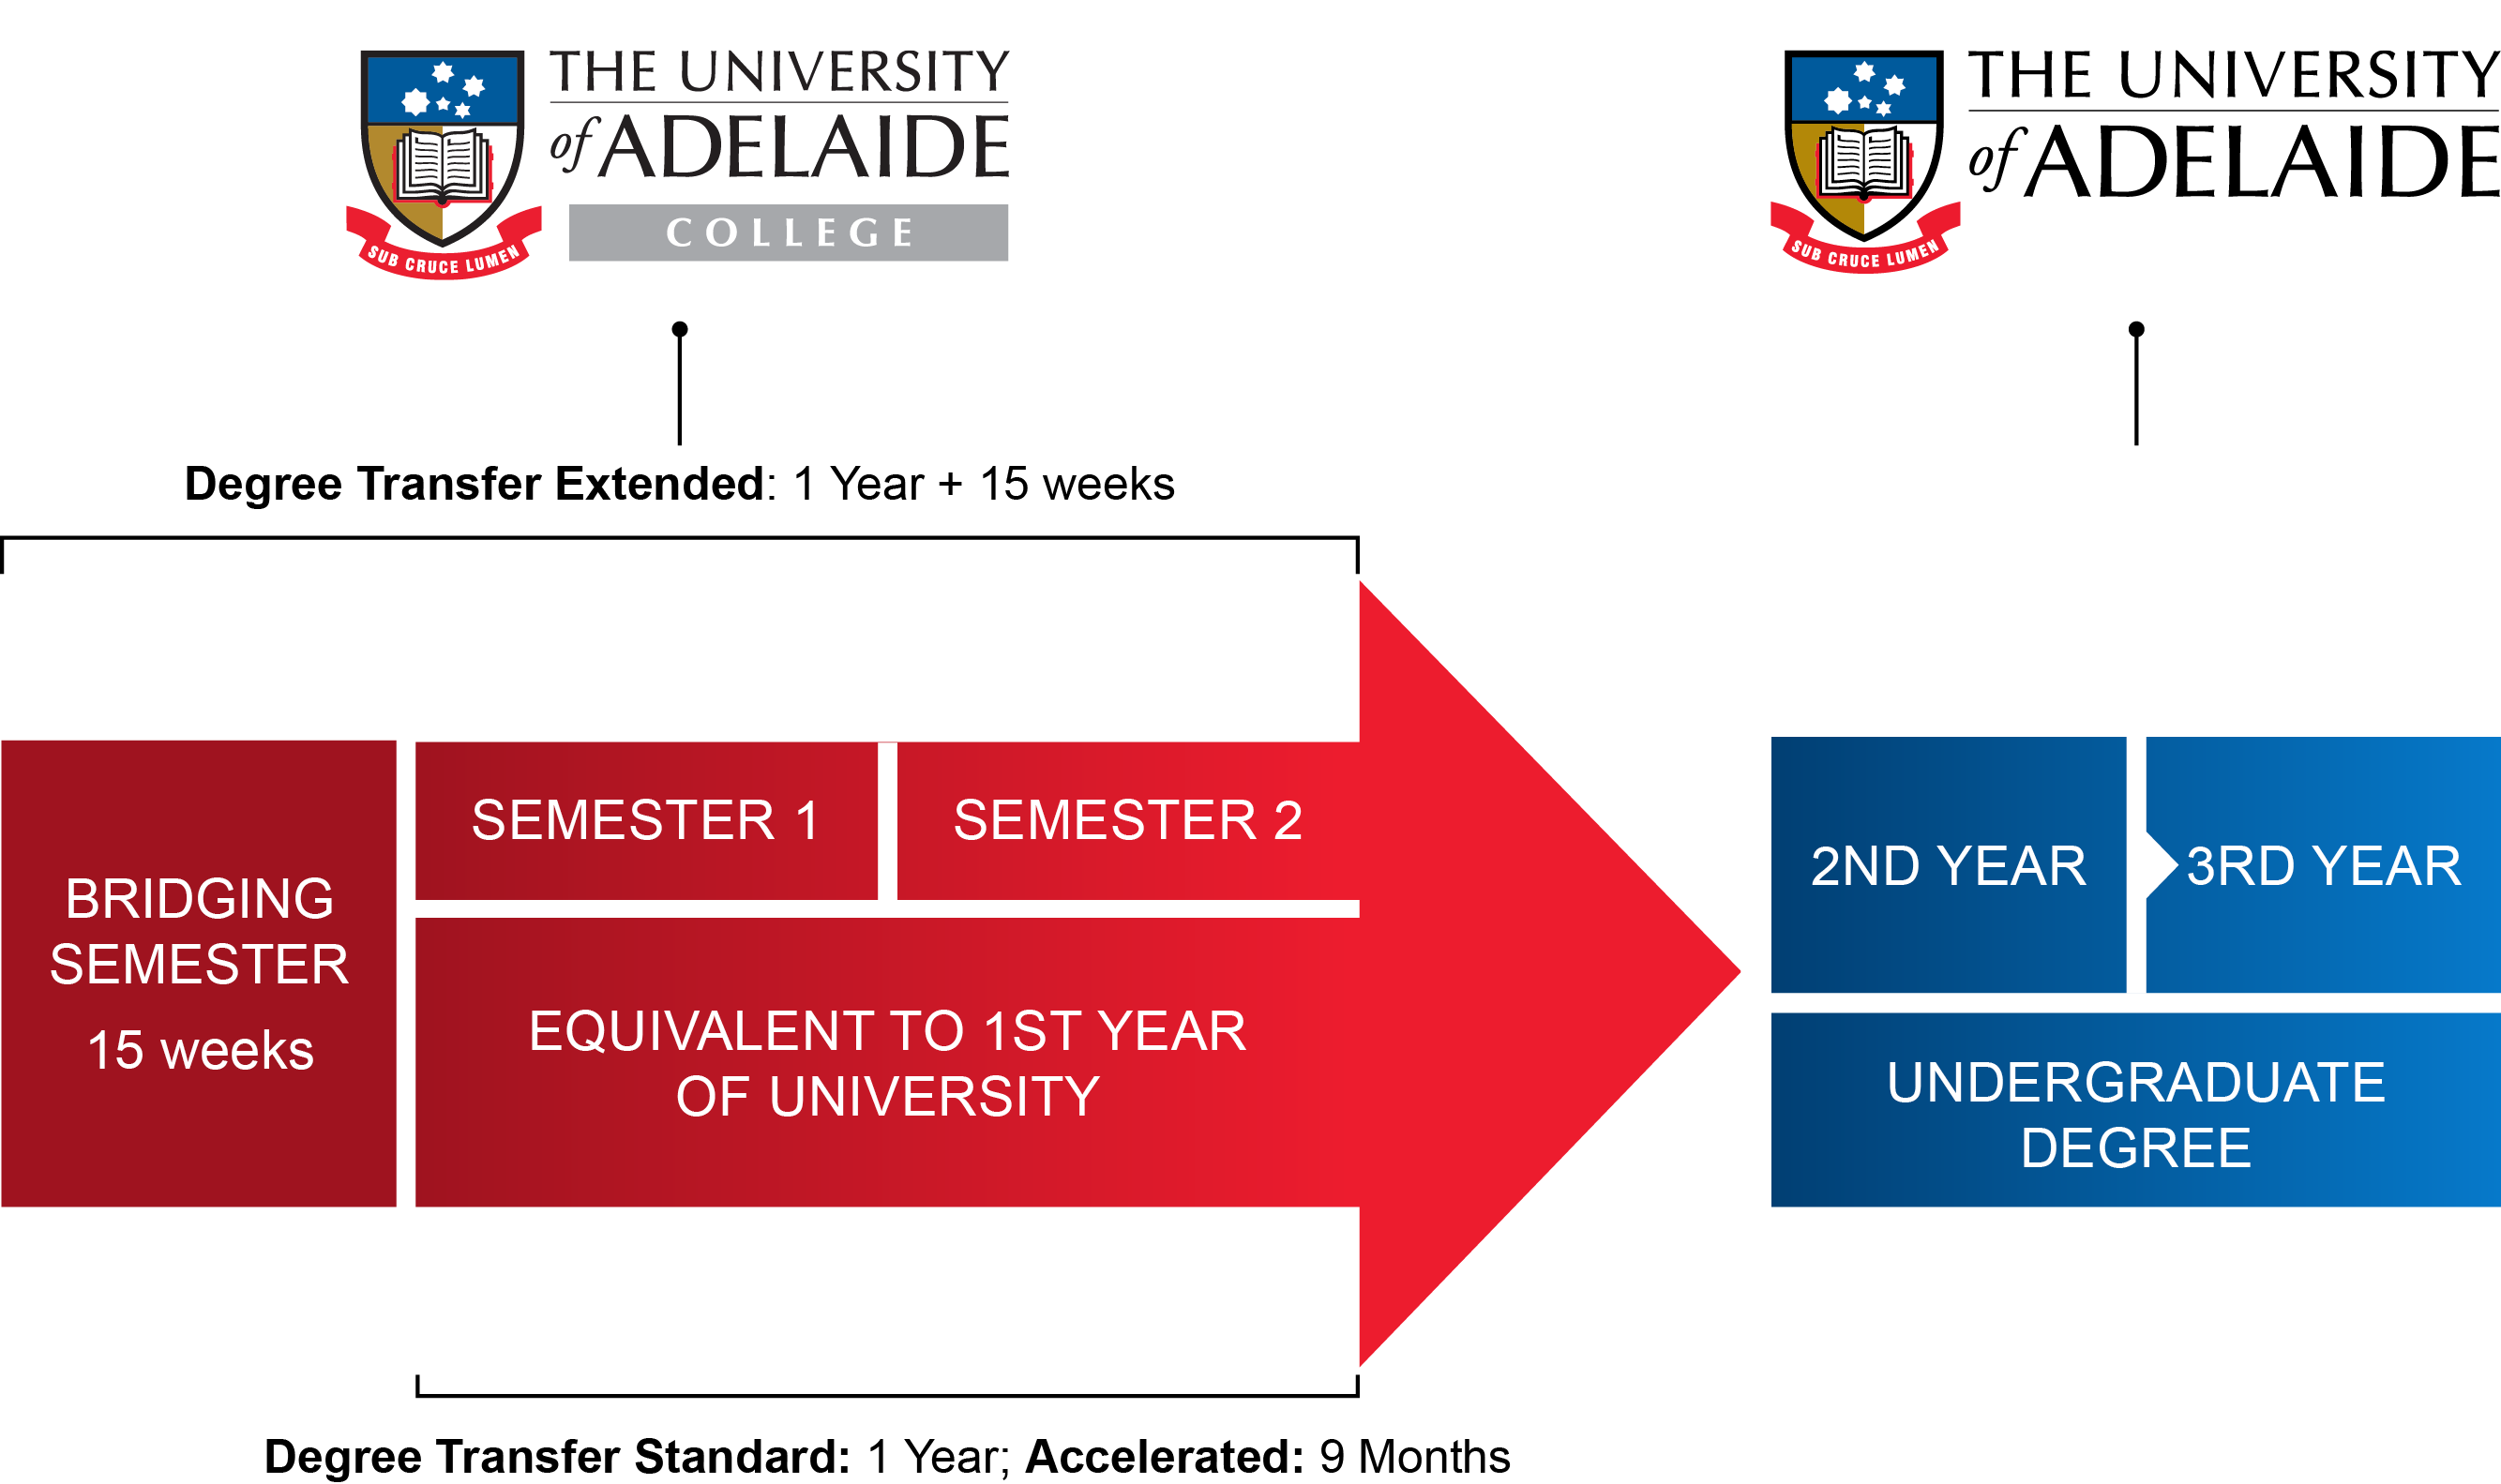 Degree Transfer - The University of Adelaide College